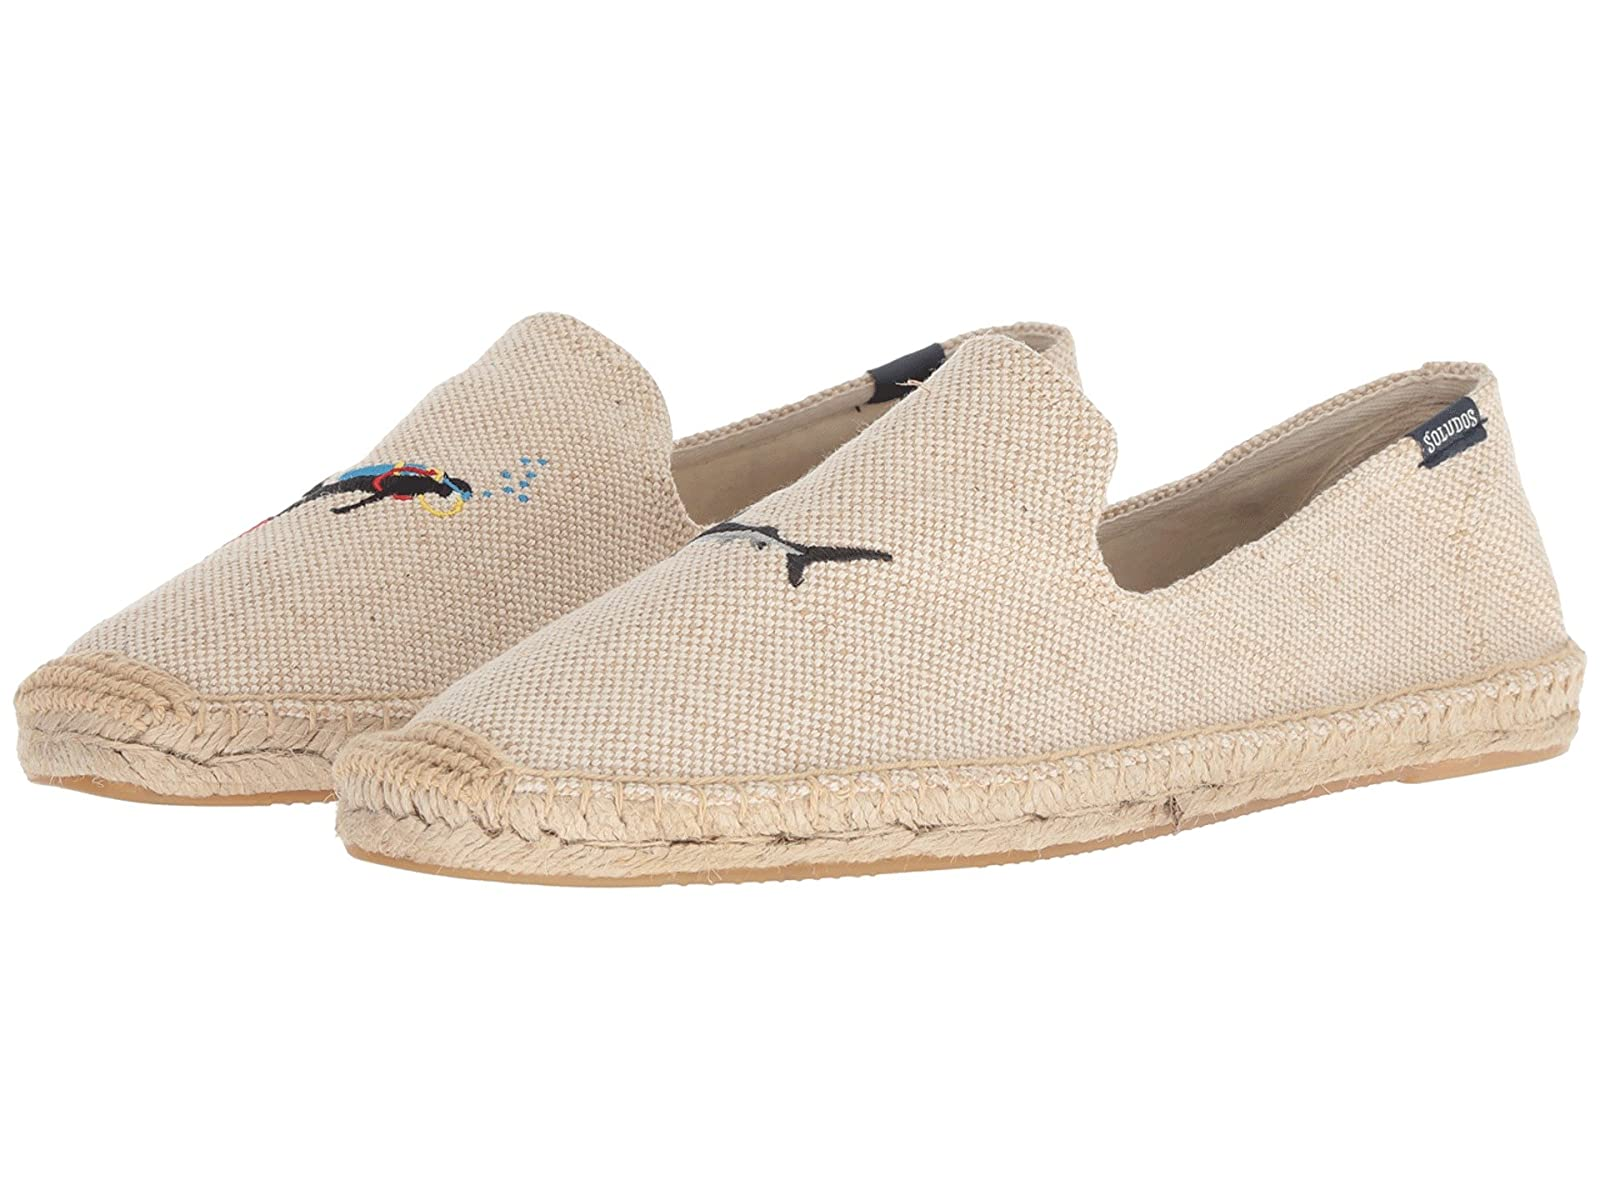 Soludos Scuba Shark Smoking SlipperAtmospheric grades have affordable shoes